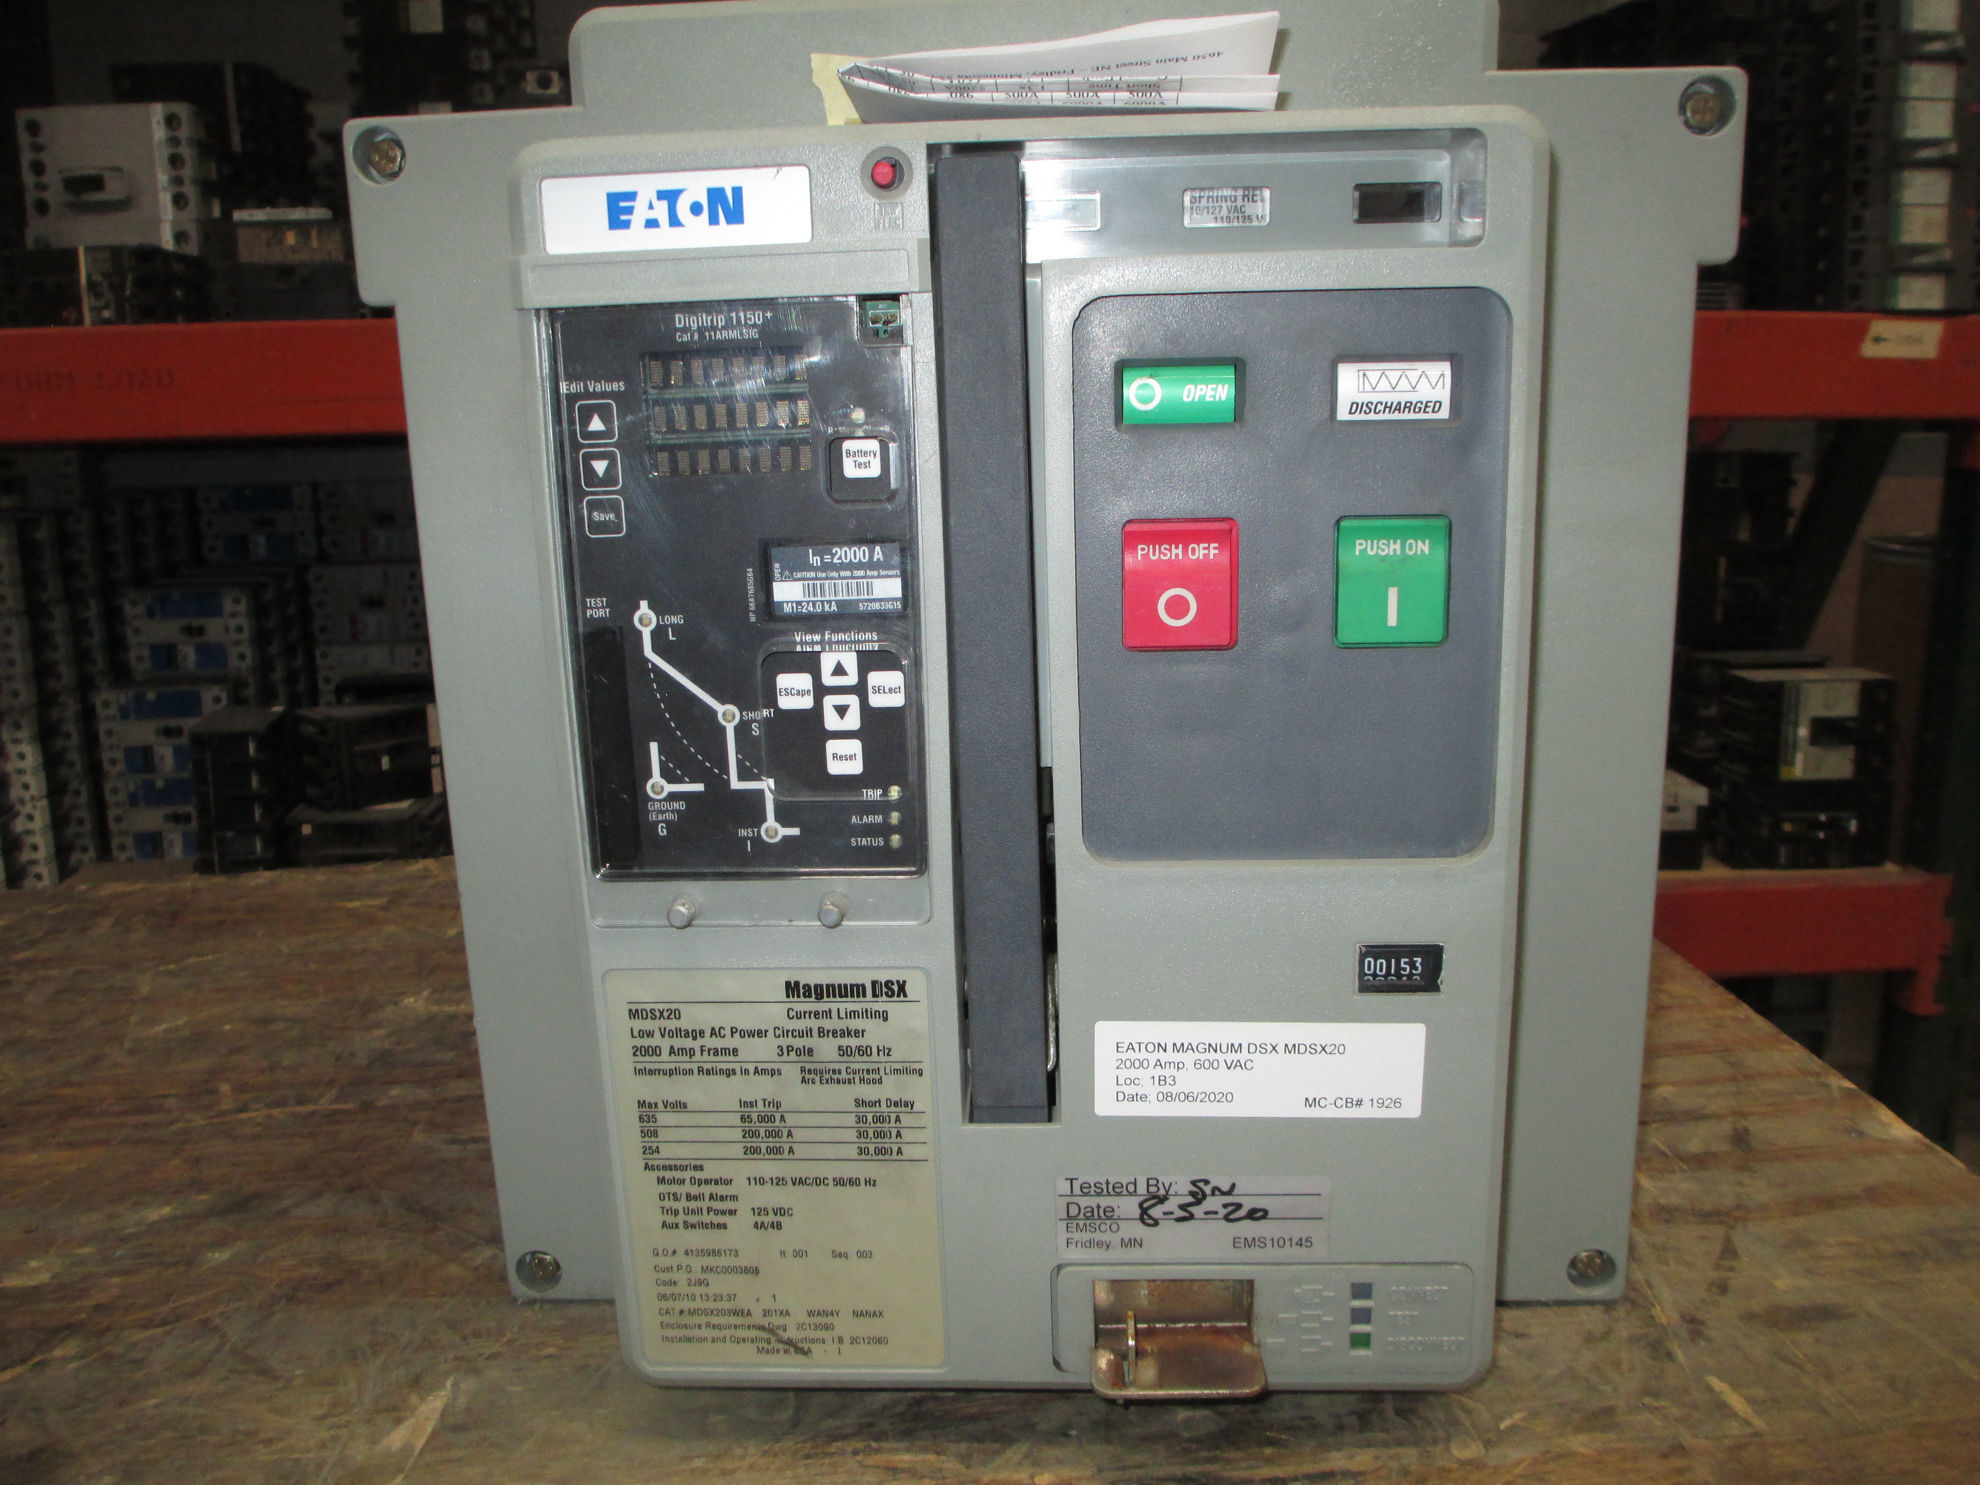 Picture of MDSX20 Eaton Magnum DSX Breaker 2000 Amp 600 VAC LSIG EO/DO